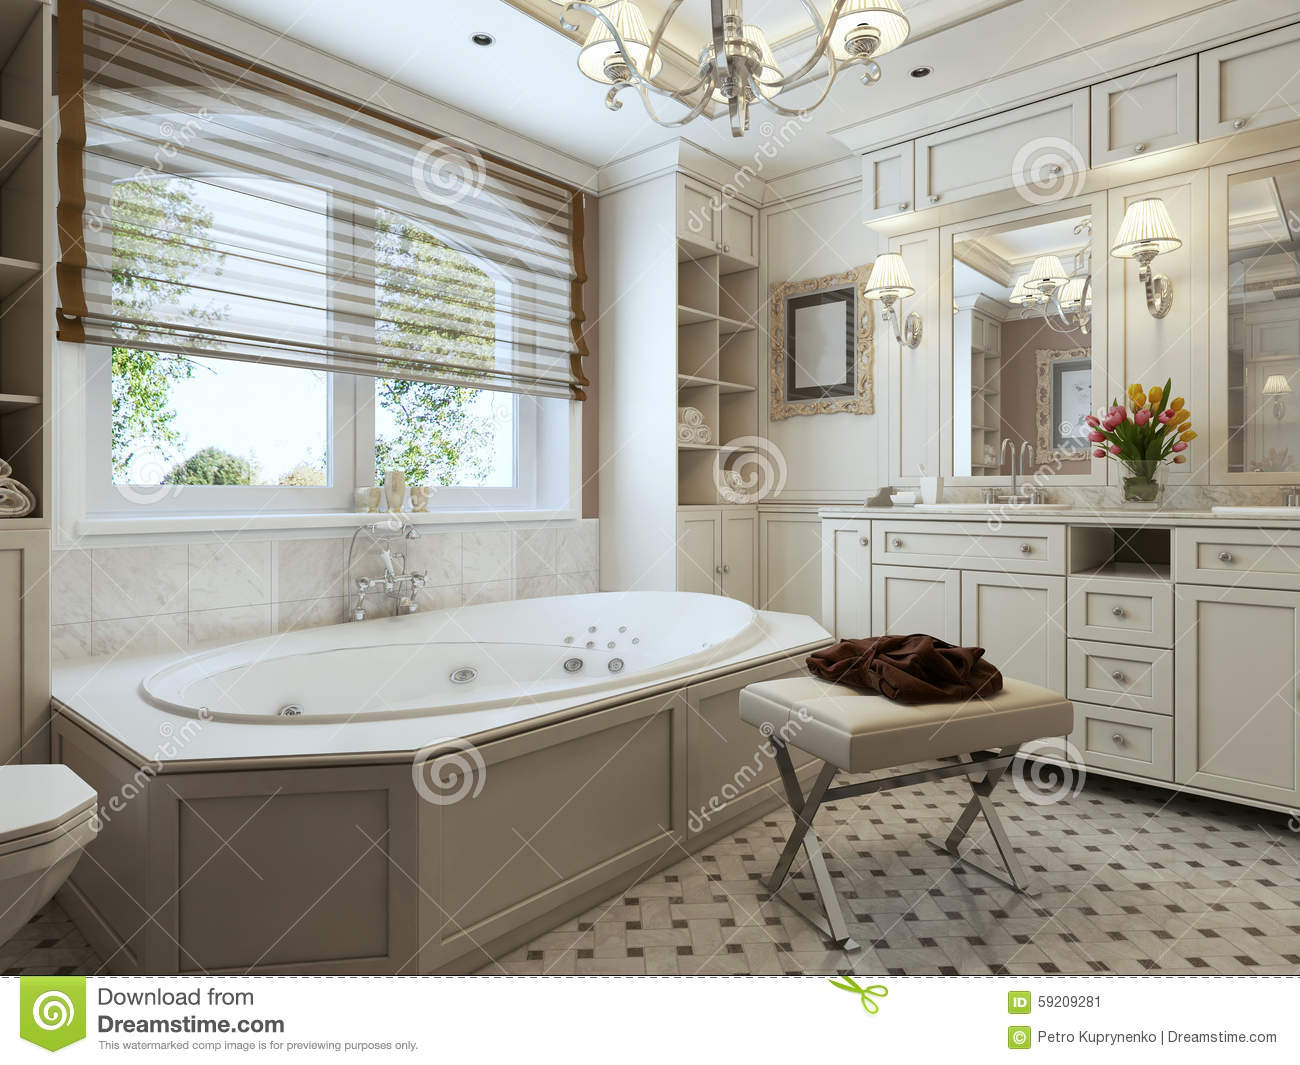 https://thumbs.dreamstime.com/z/bagno-art-deco-59209281.jpg